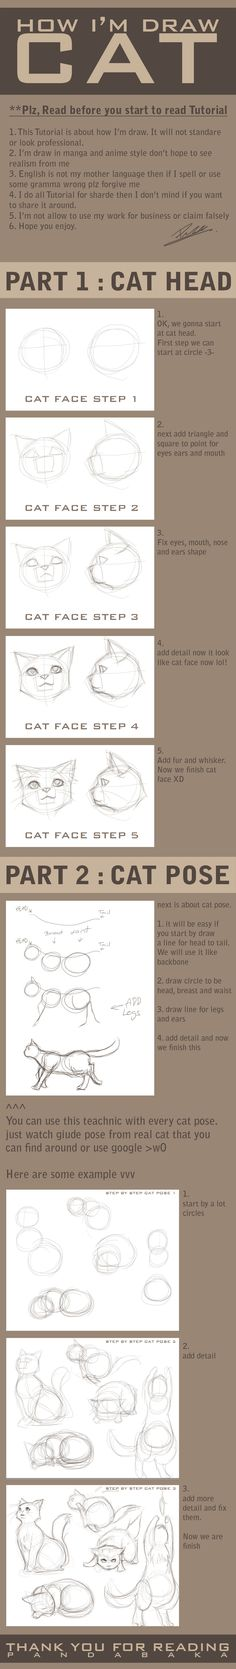 how draw a cat by pandabaka on deviantART